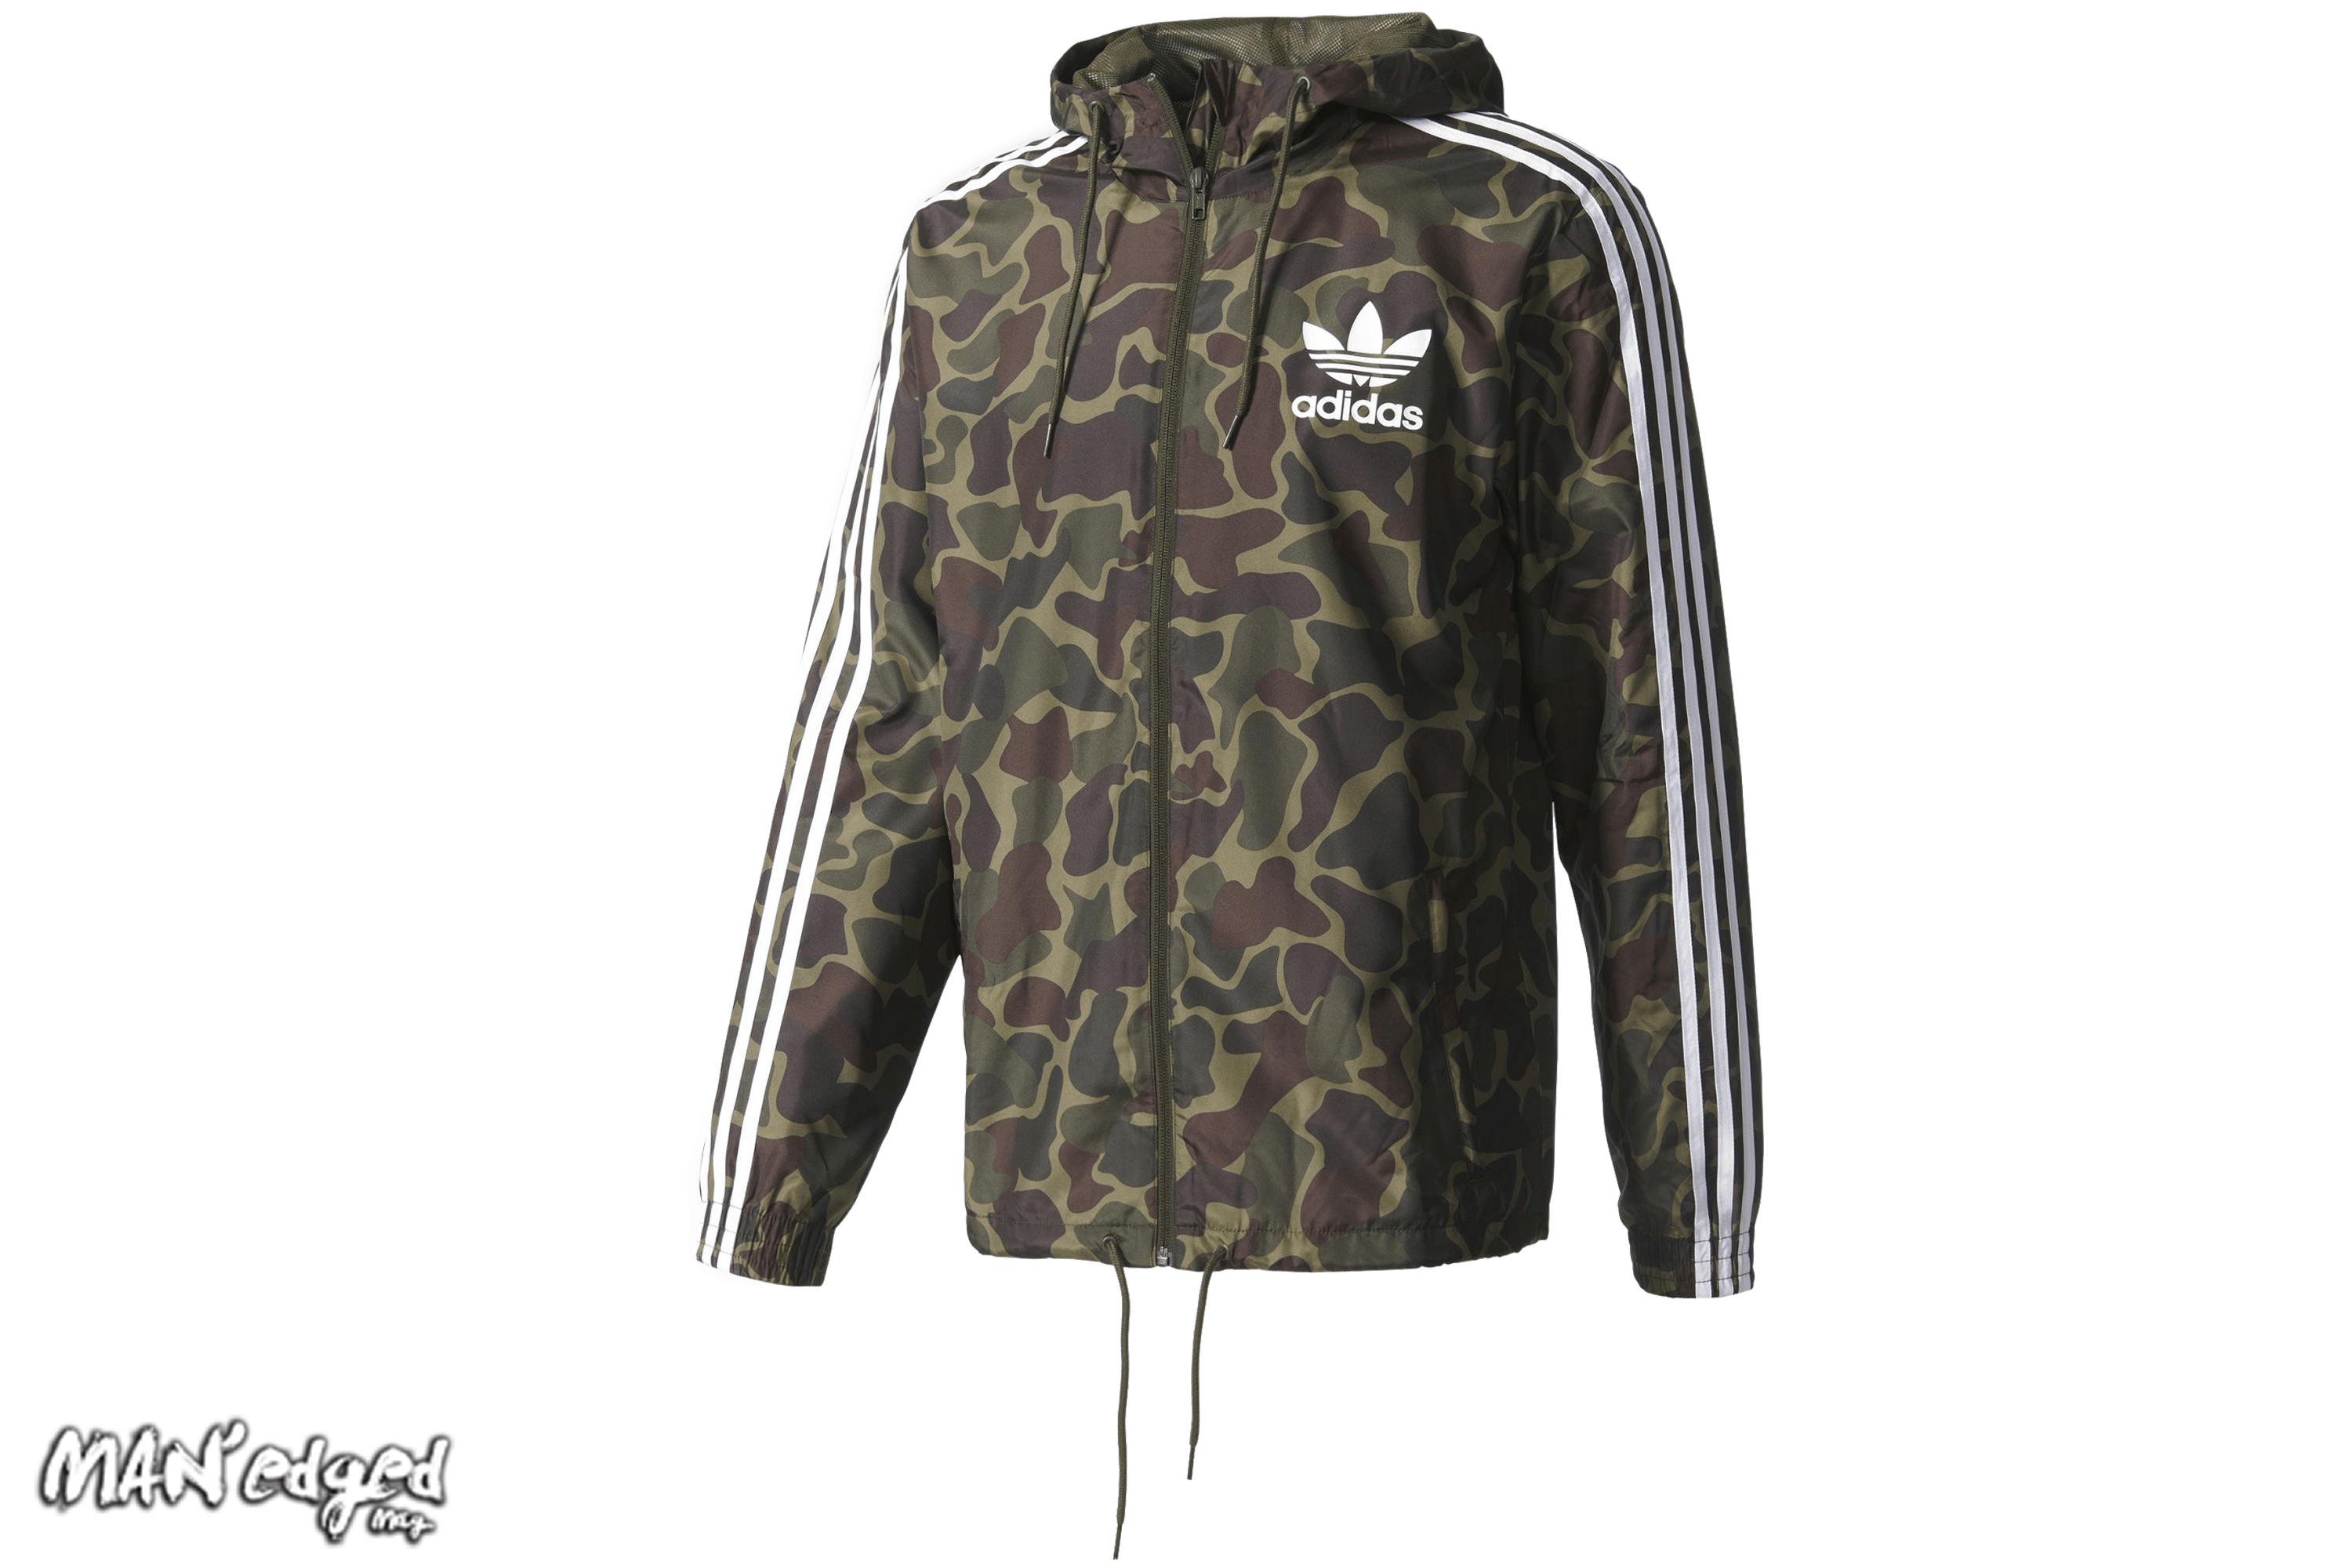 Men's green camouflage windbreaker jacket by Adidas, featured in MAN'edged Magazine St Patricks Day men's style round up